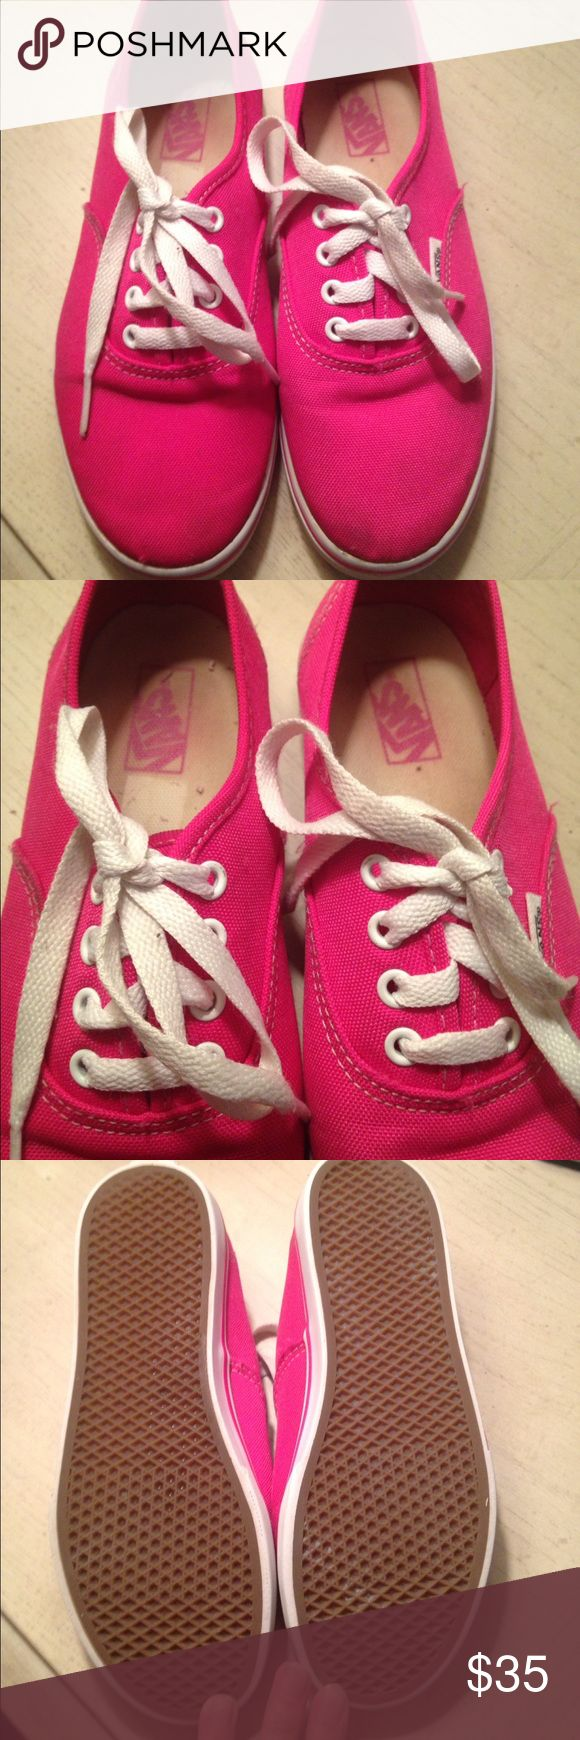 EUC! Hot Pink Vans! Pretty in Pink! EUC! Hot Pink Vans! White laces and stitching! Super cute and perfect for any outfit. The inside show a little wear, but the outsides are in great condition as the pictures show! I paid $50 so I would like to get most of my money back! Pretty in Pink! Size Kids 3.5! Vans Shoes Sneakers